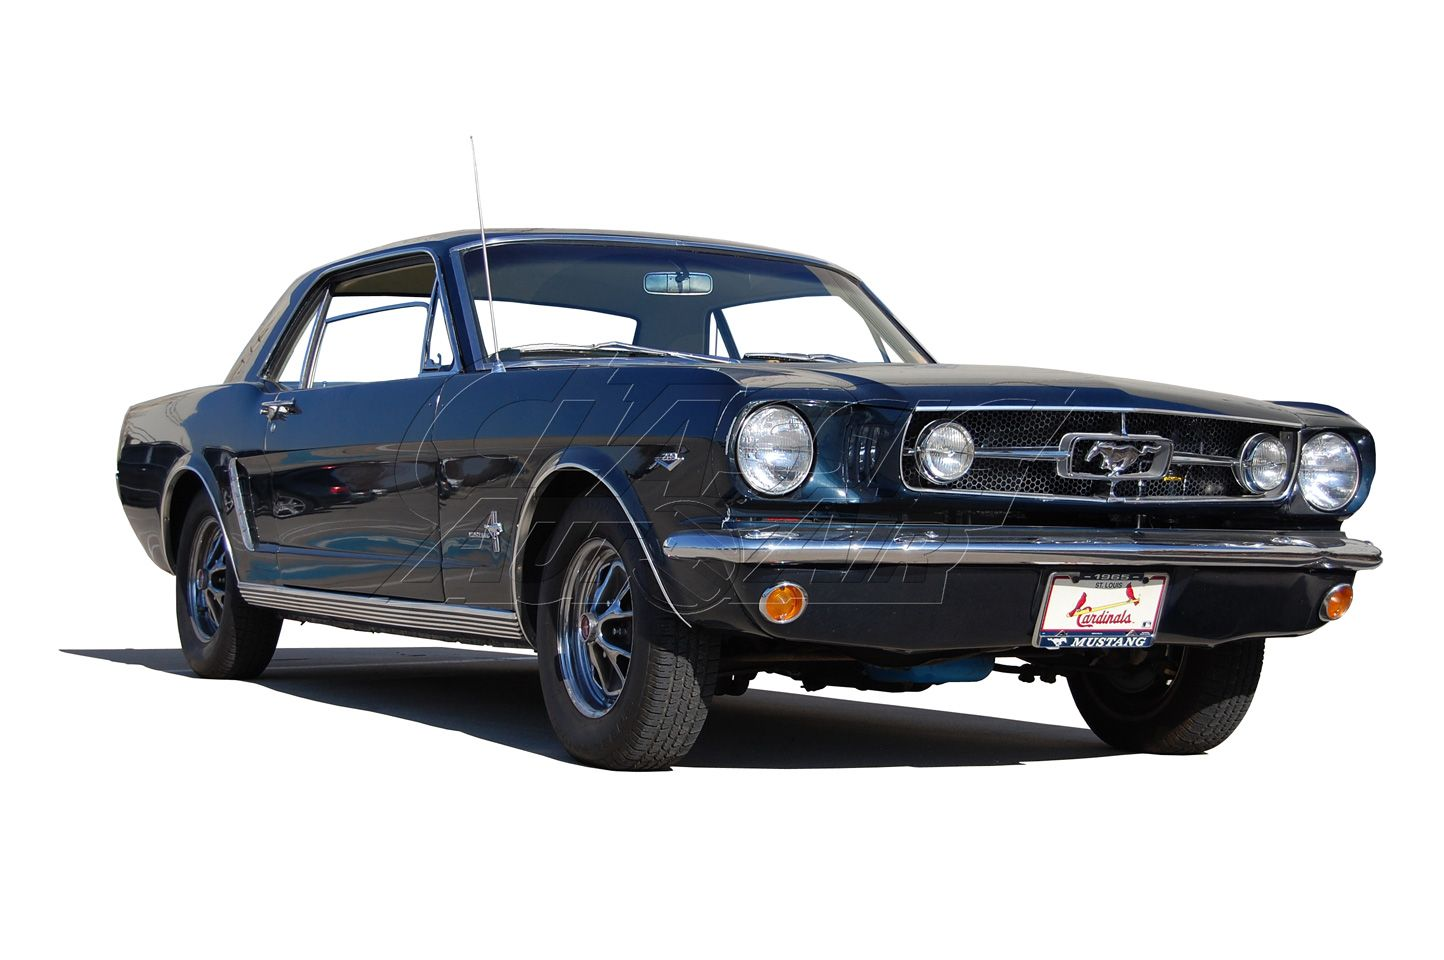 Or 1966 mustang air conditioning system